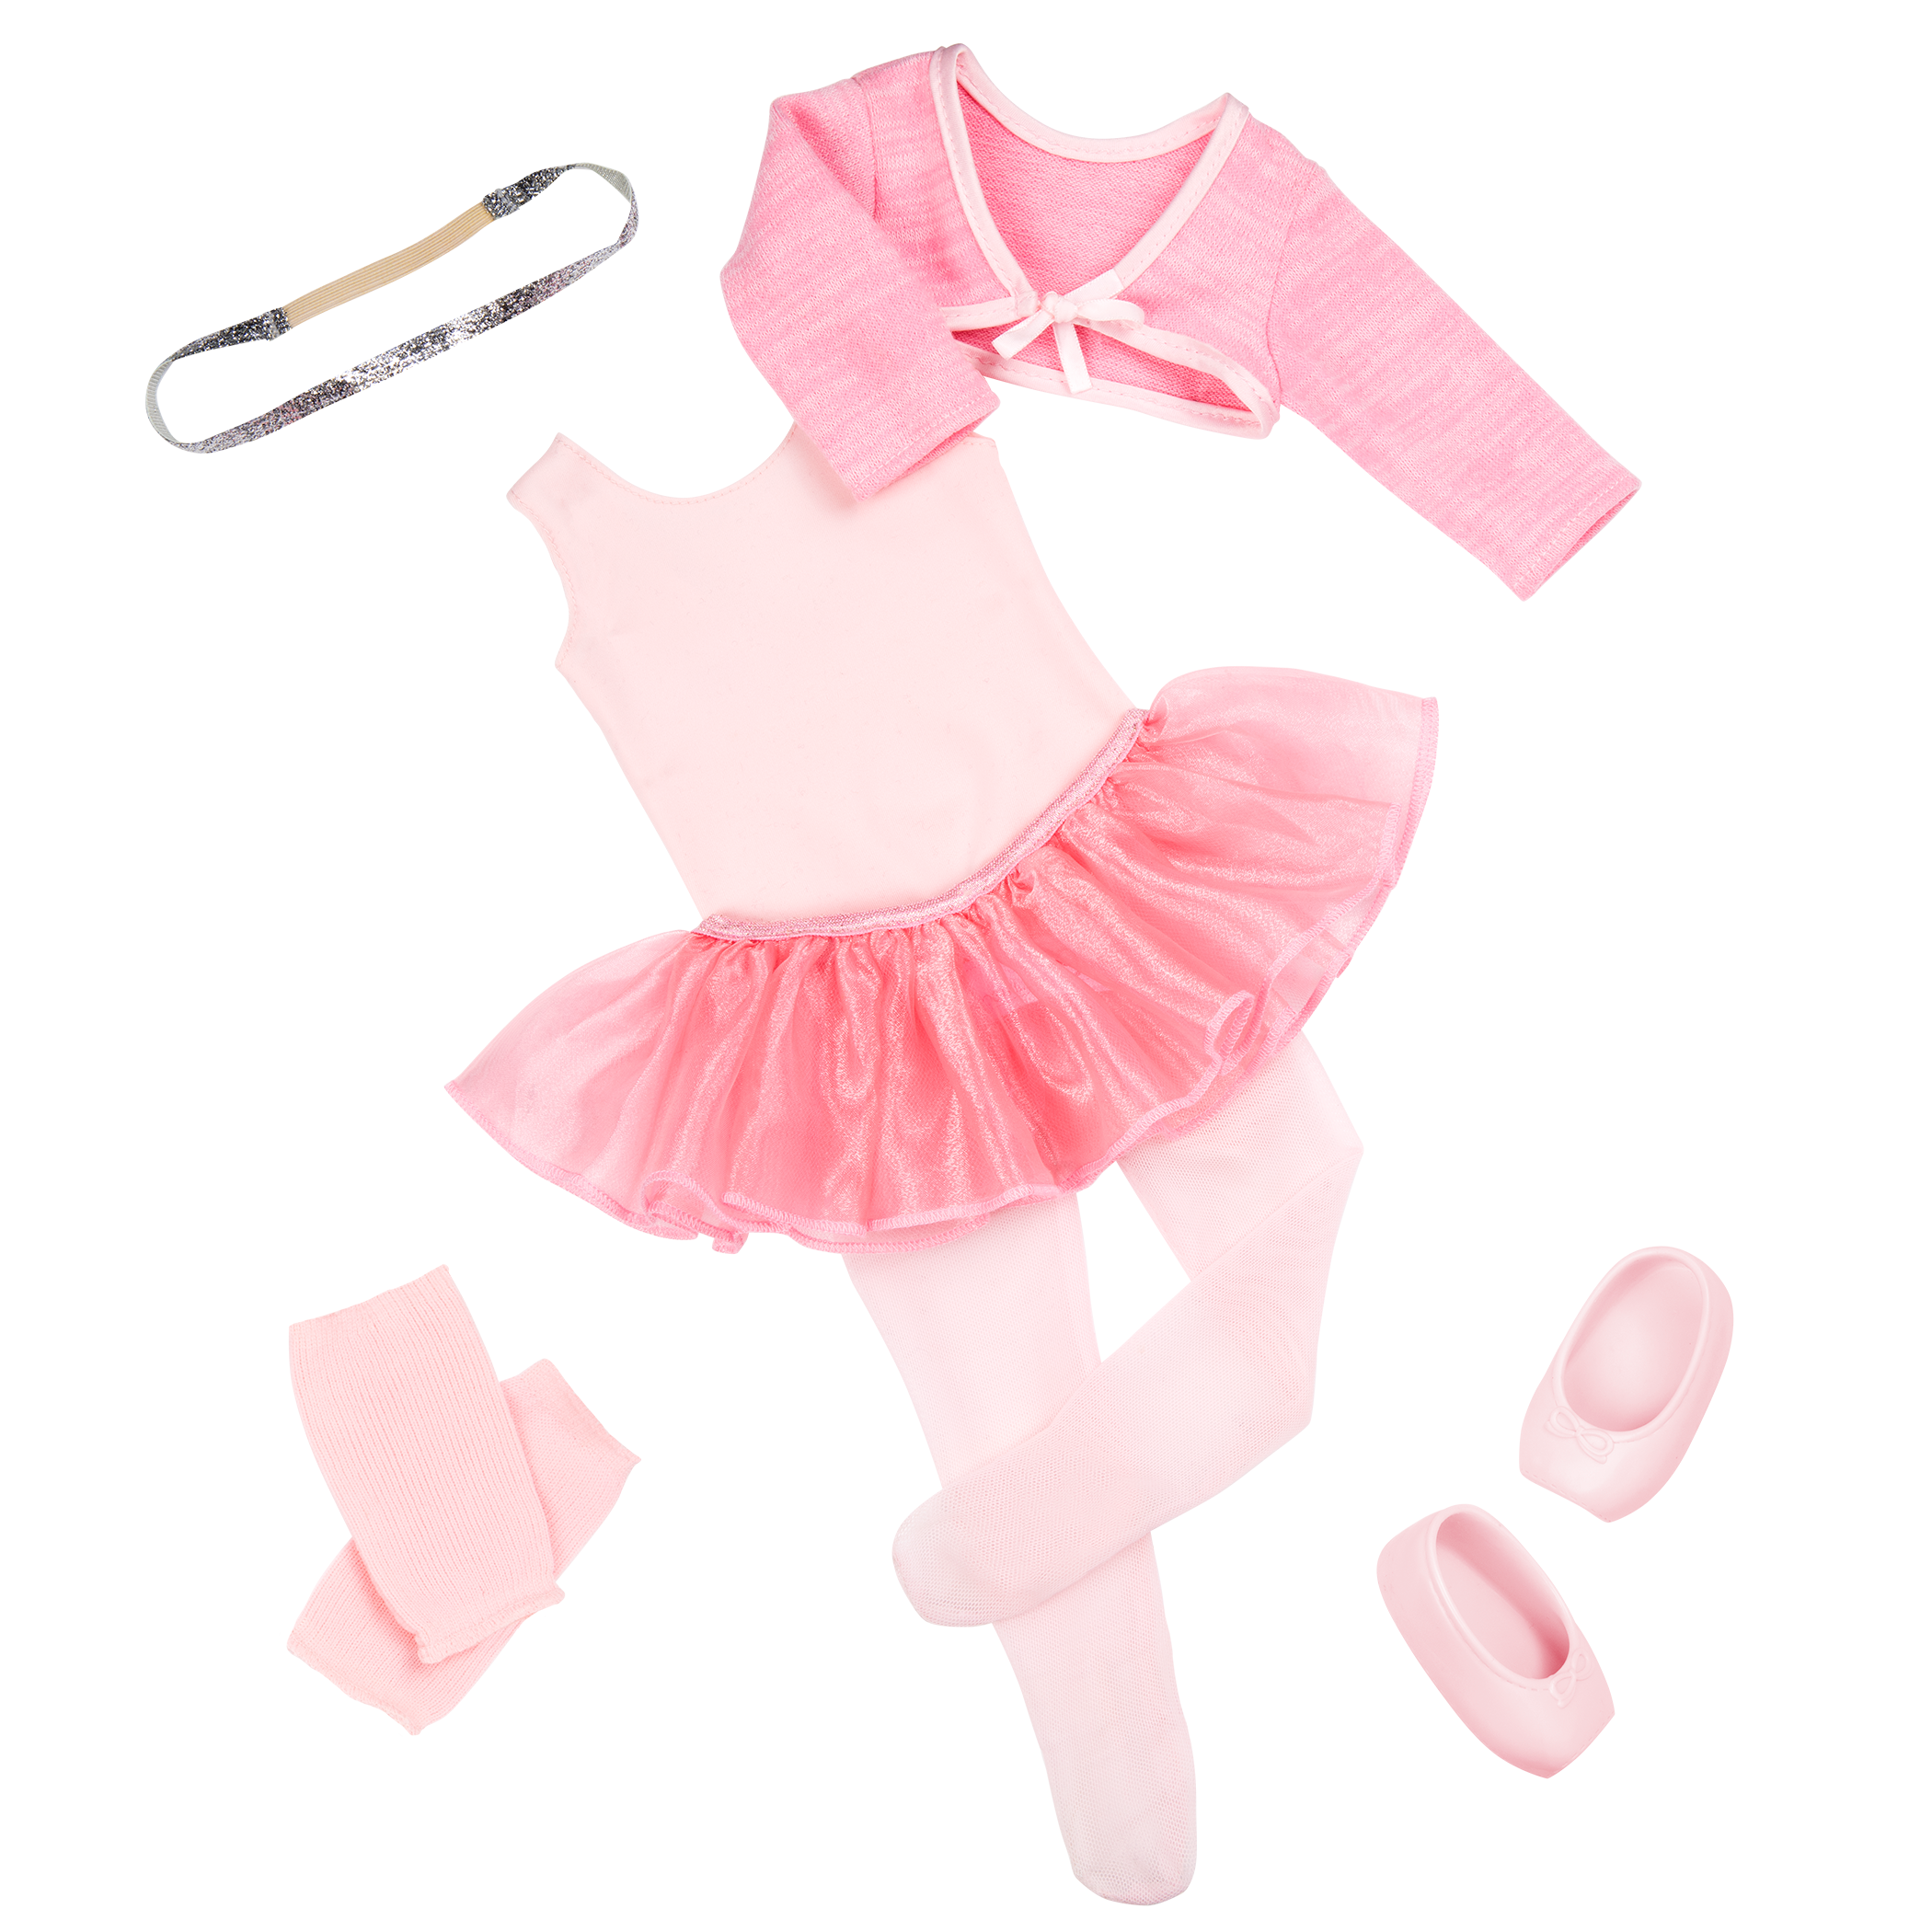 Detail of pink ballet clothes